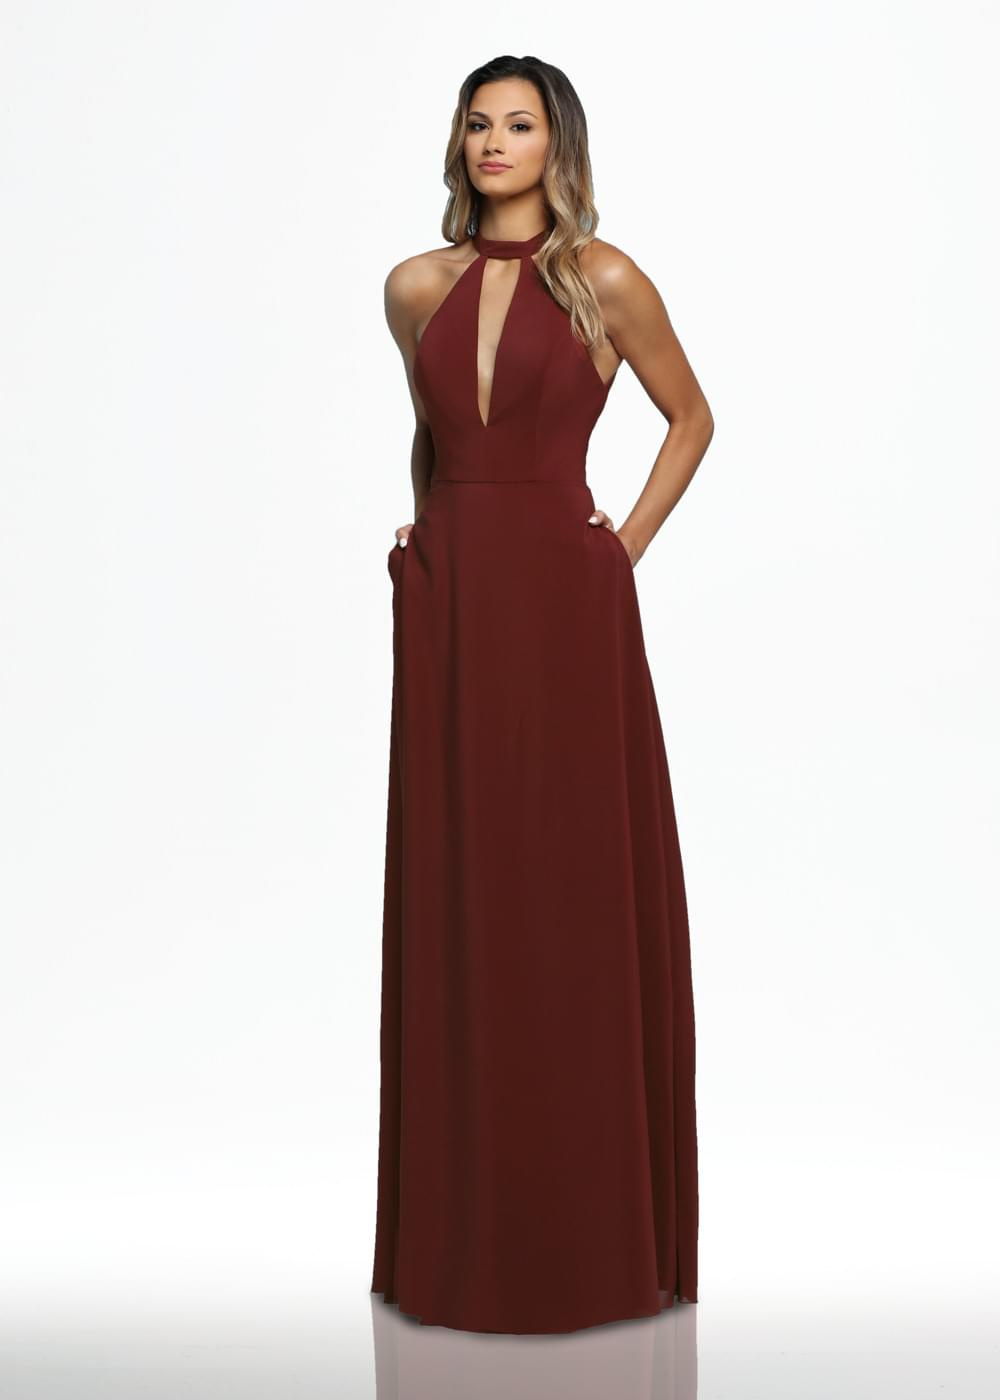 80115 Dresses with Straps By Ashdon